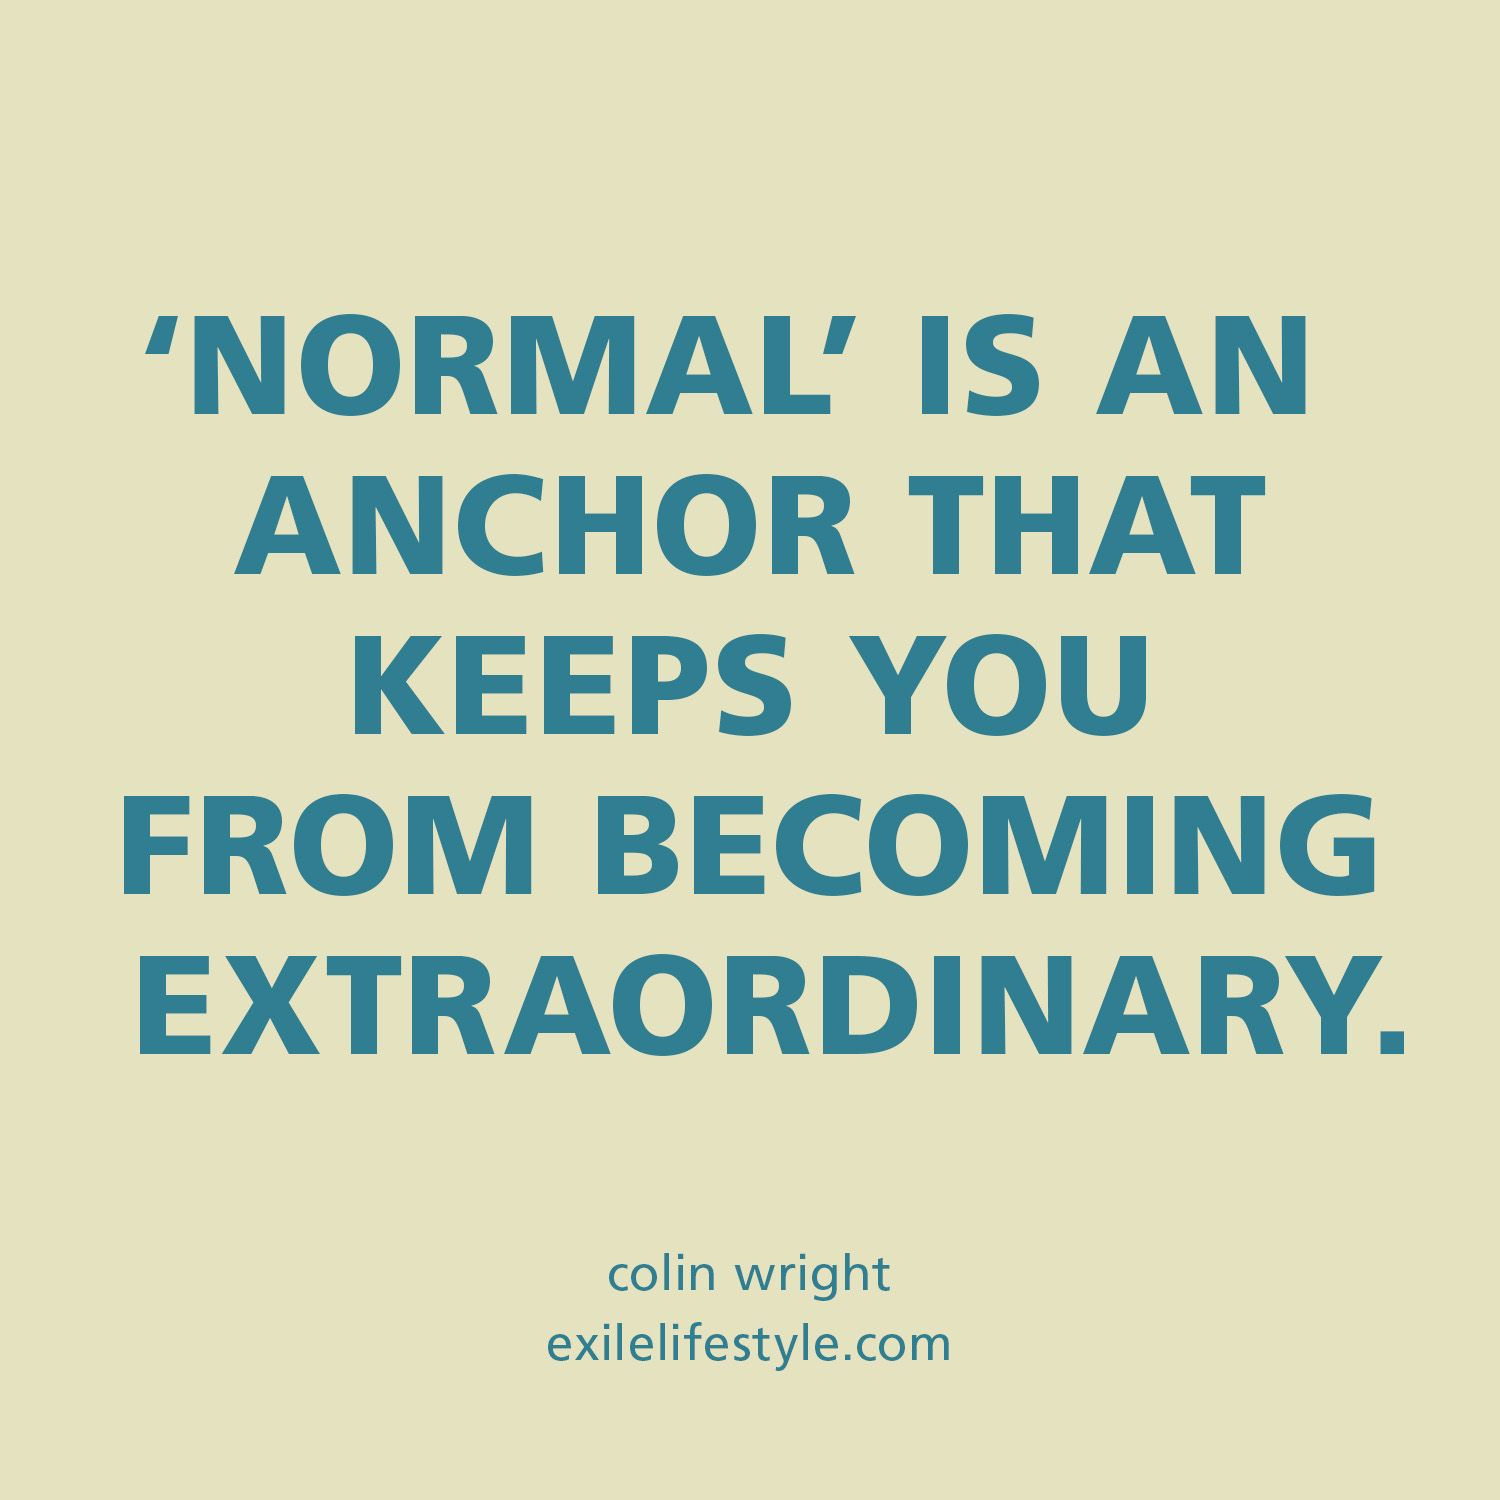 Normal is an anchor that keeps you from becoming extraordinary ...